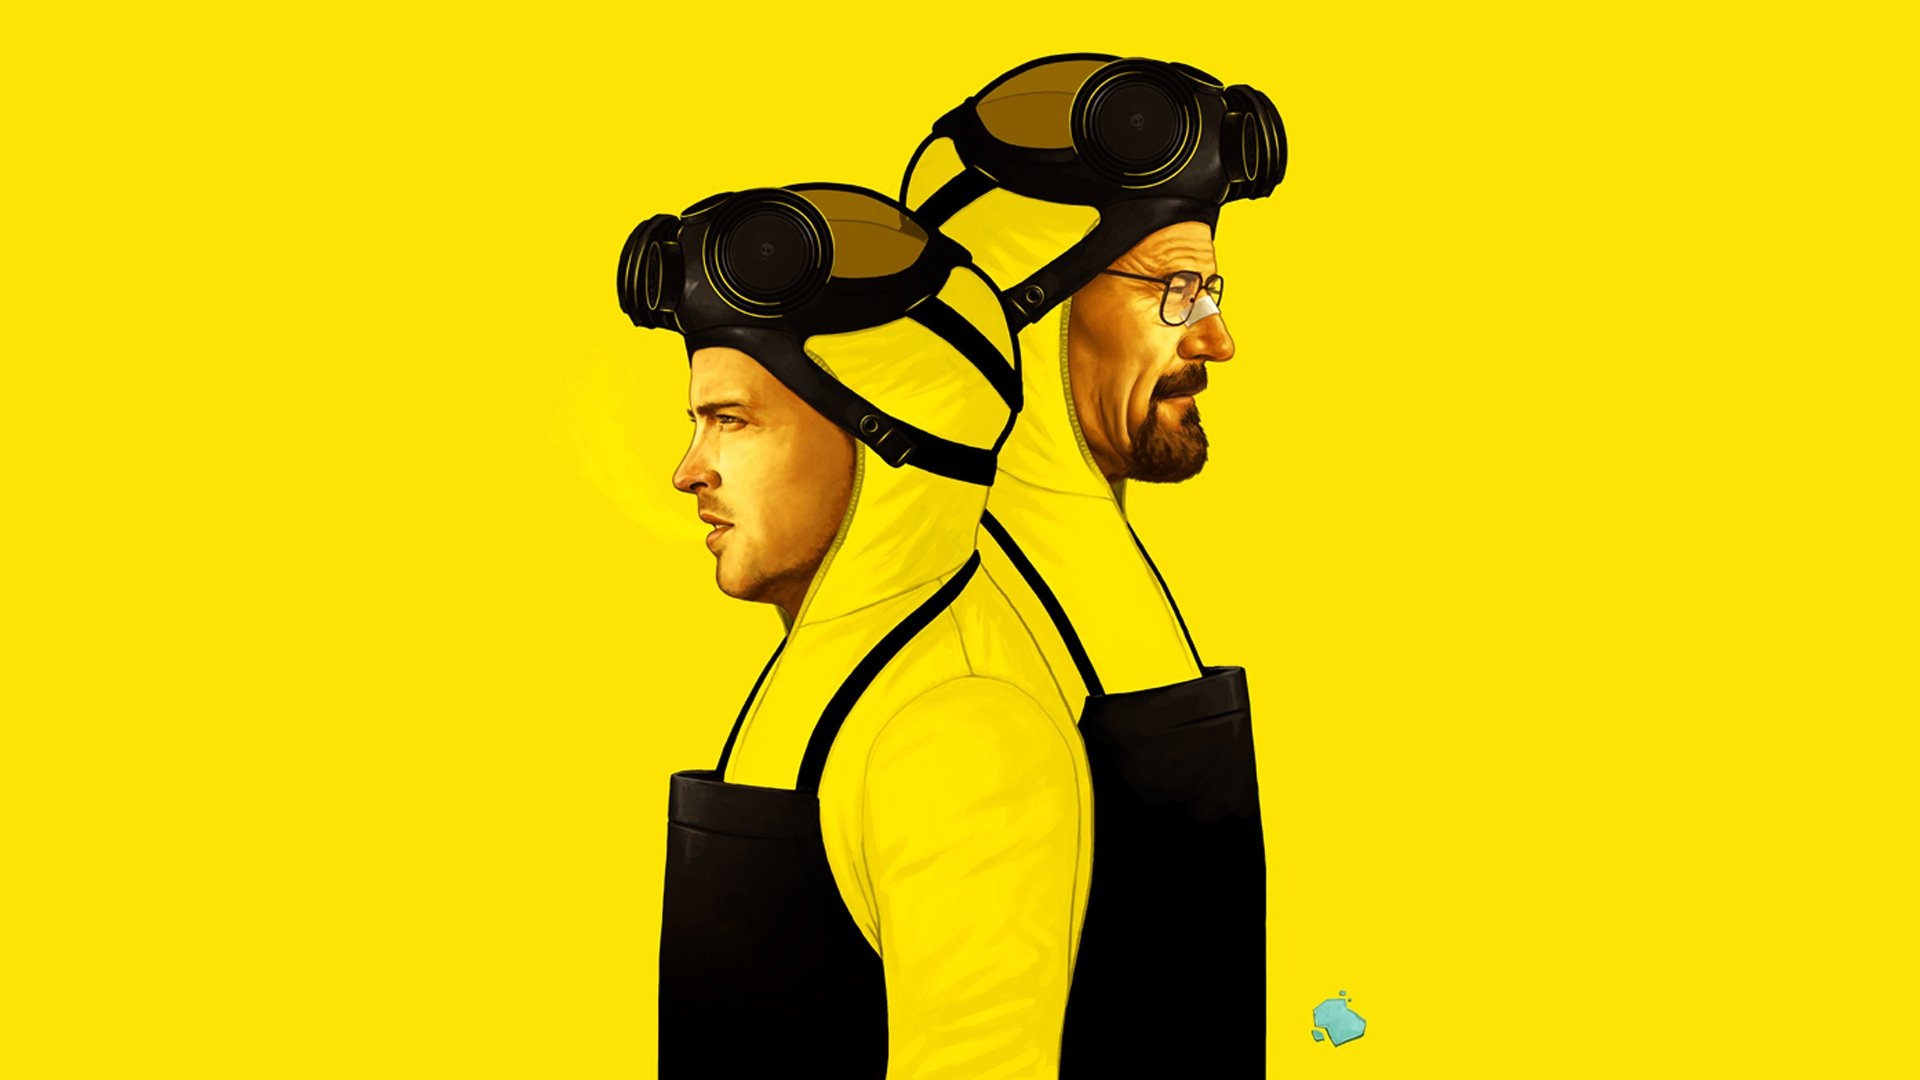 TV Show - Breaking Bad  Aaron Paul Jesse Pinkman Walter White Bryan Cranston Wallpaper